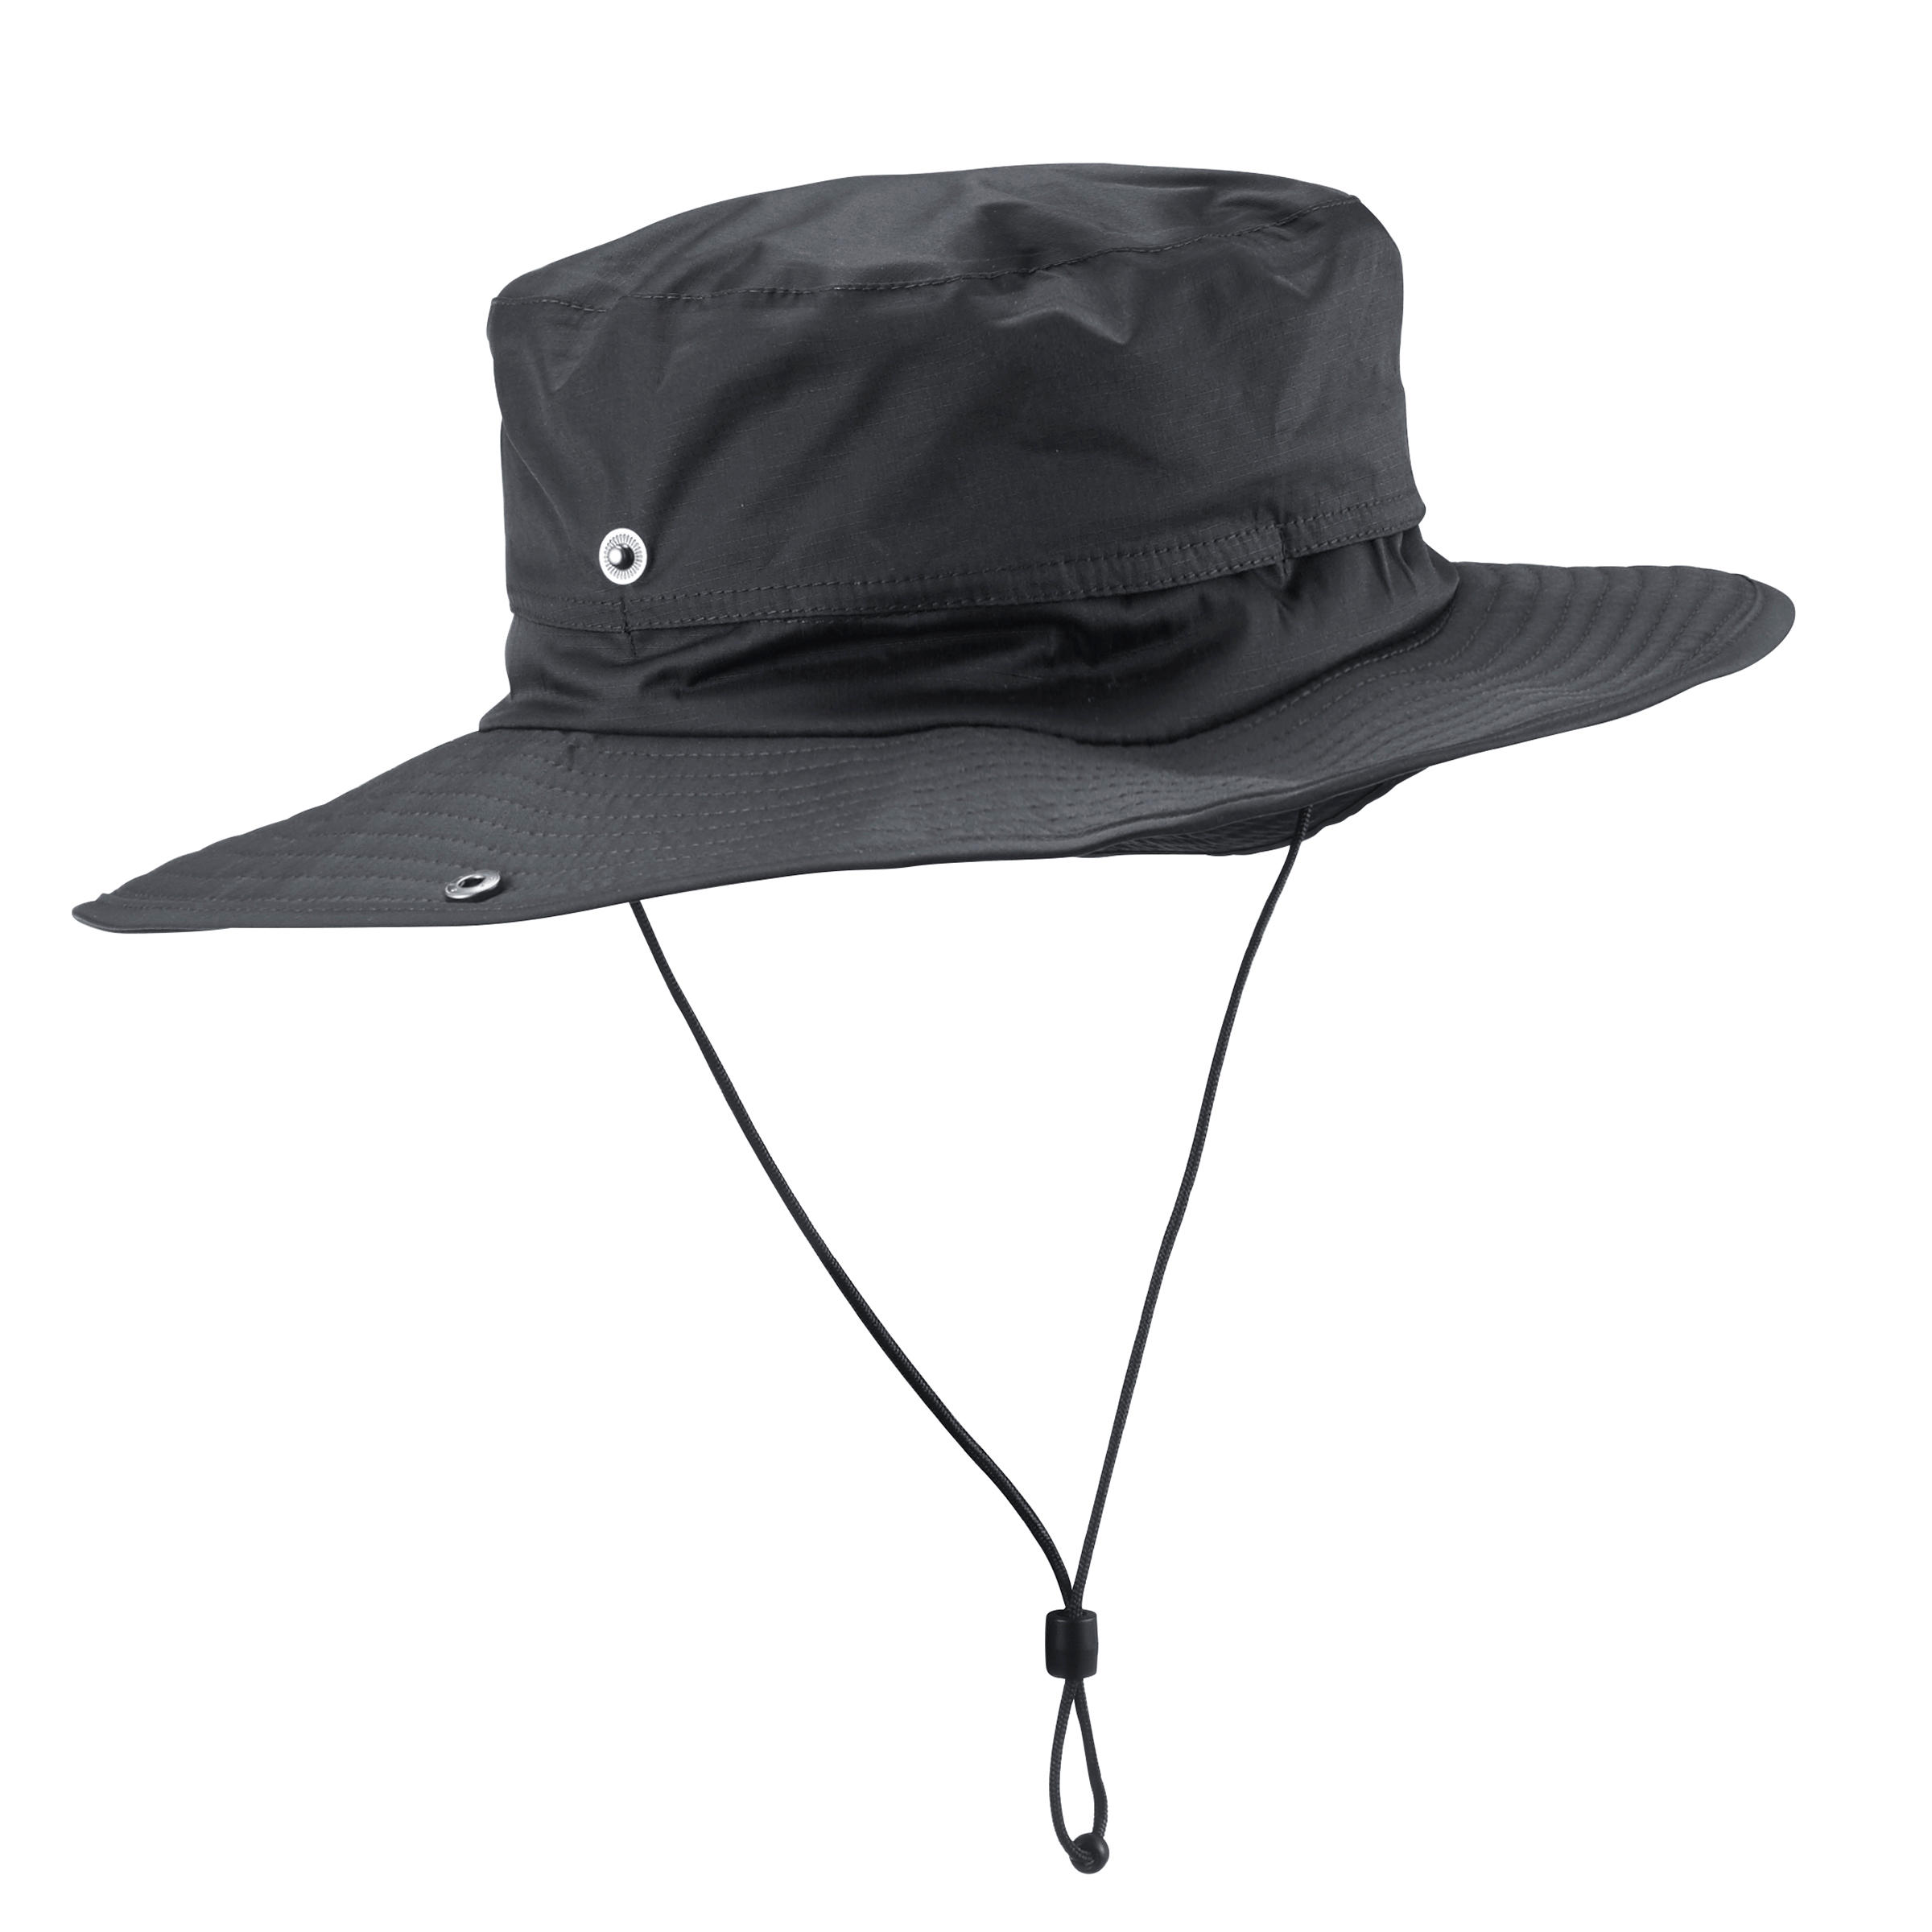 Hiking hat 900 waterproof dark grey